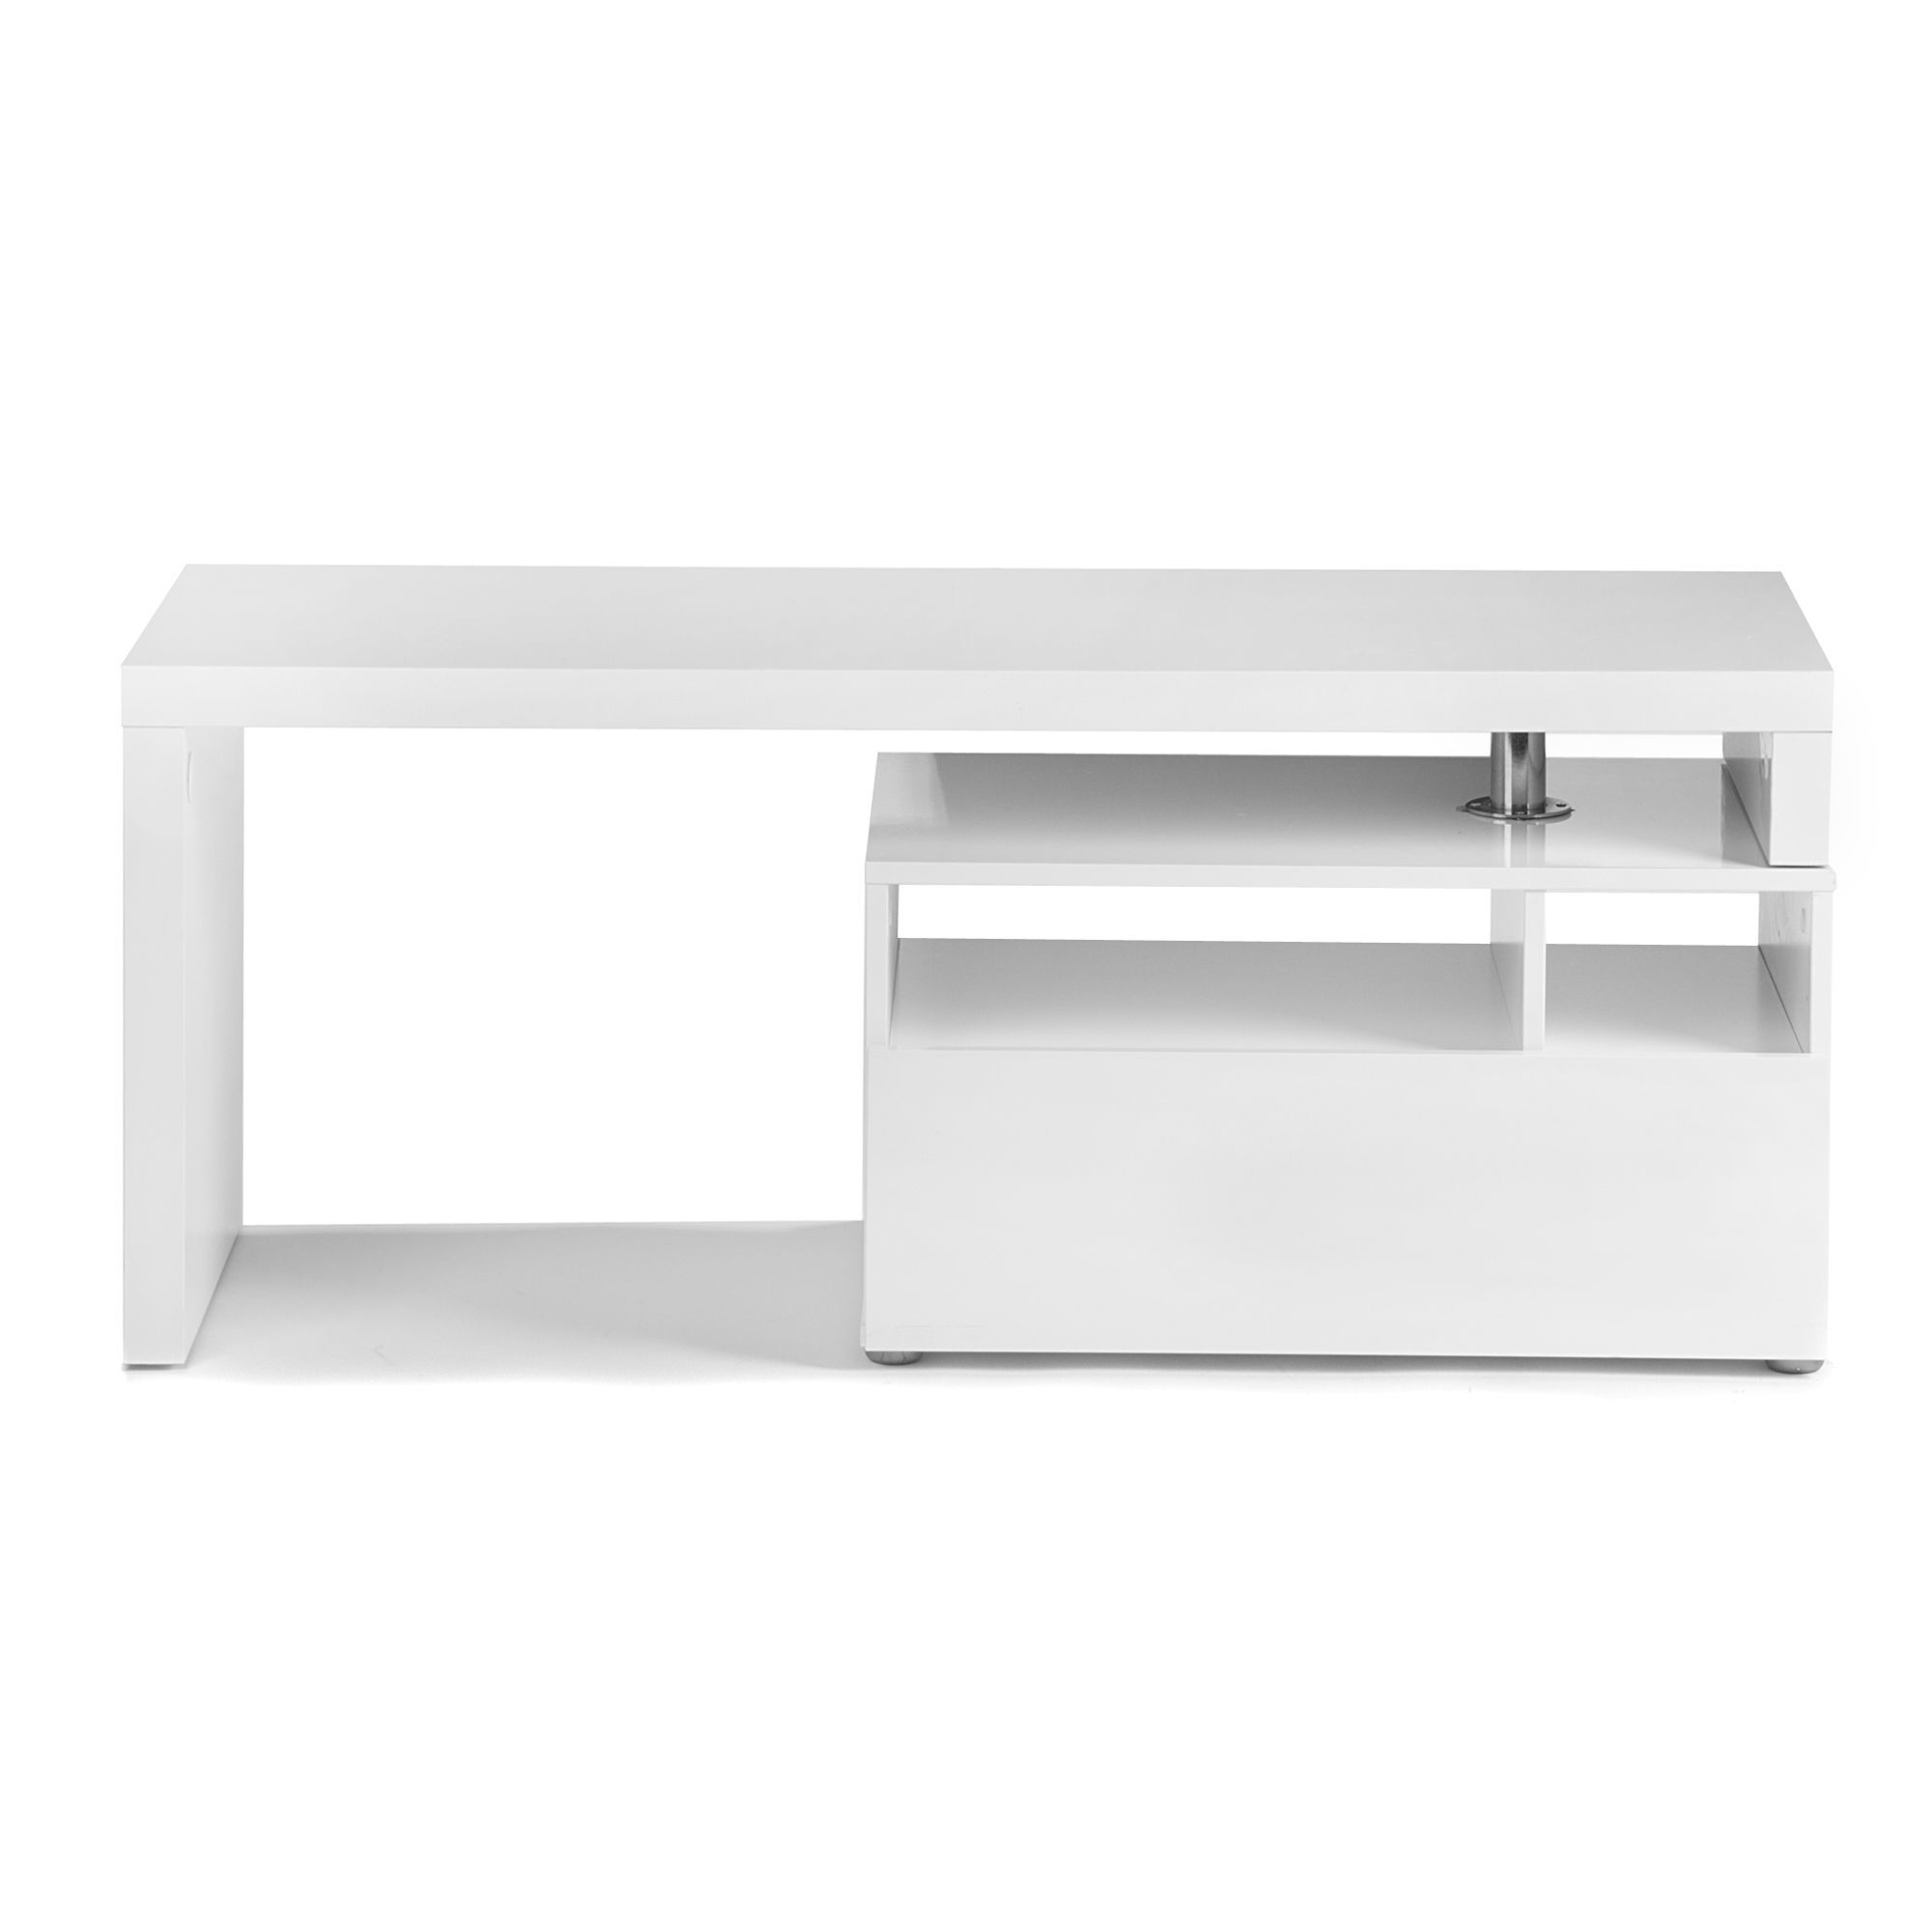 Meuble Tv Angle Pivotant - Beautiful Alin A Meuble Tv Contemporary Joshkrajcik Us [mjhdah]https://media.madeindesign.com/nuxeo/divers/9/2/92b40ca1-4c7f-40ea-b8d8-f35534aaeb45.jpg